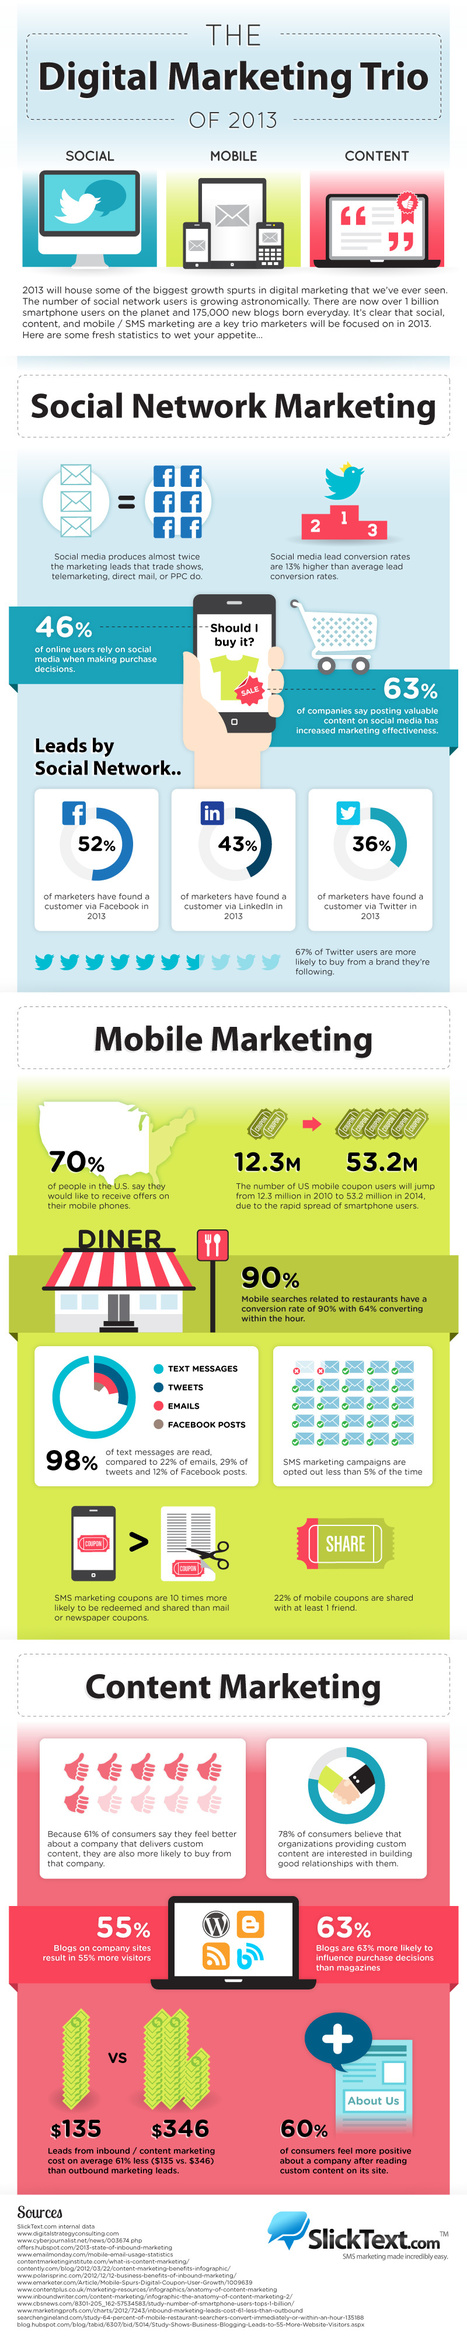 The Digital Marketing Trio Of 2013 [Infographic] | Le Monde 2.0 | Scoop.it